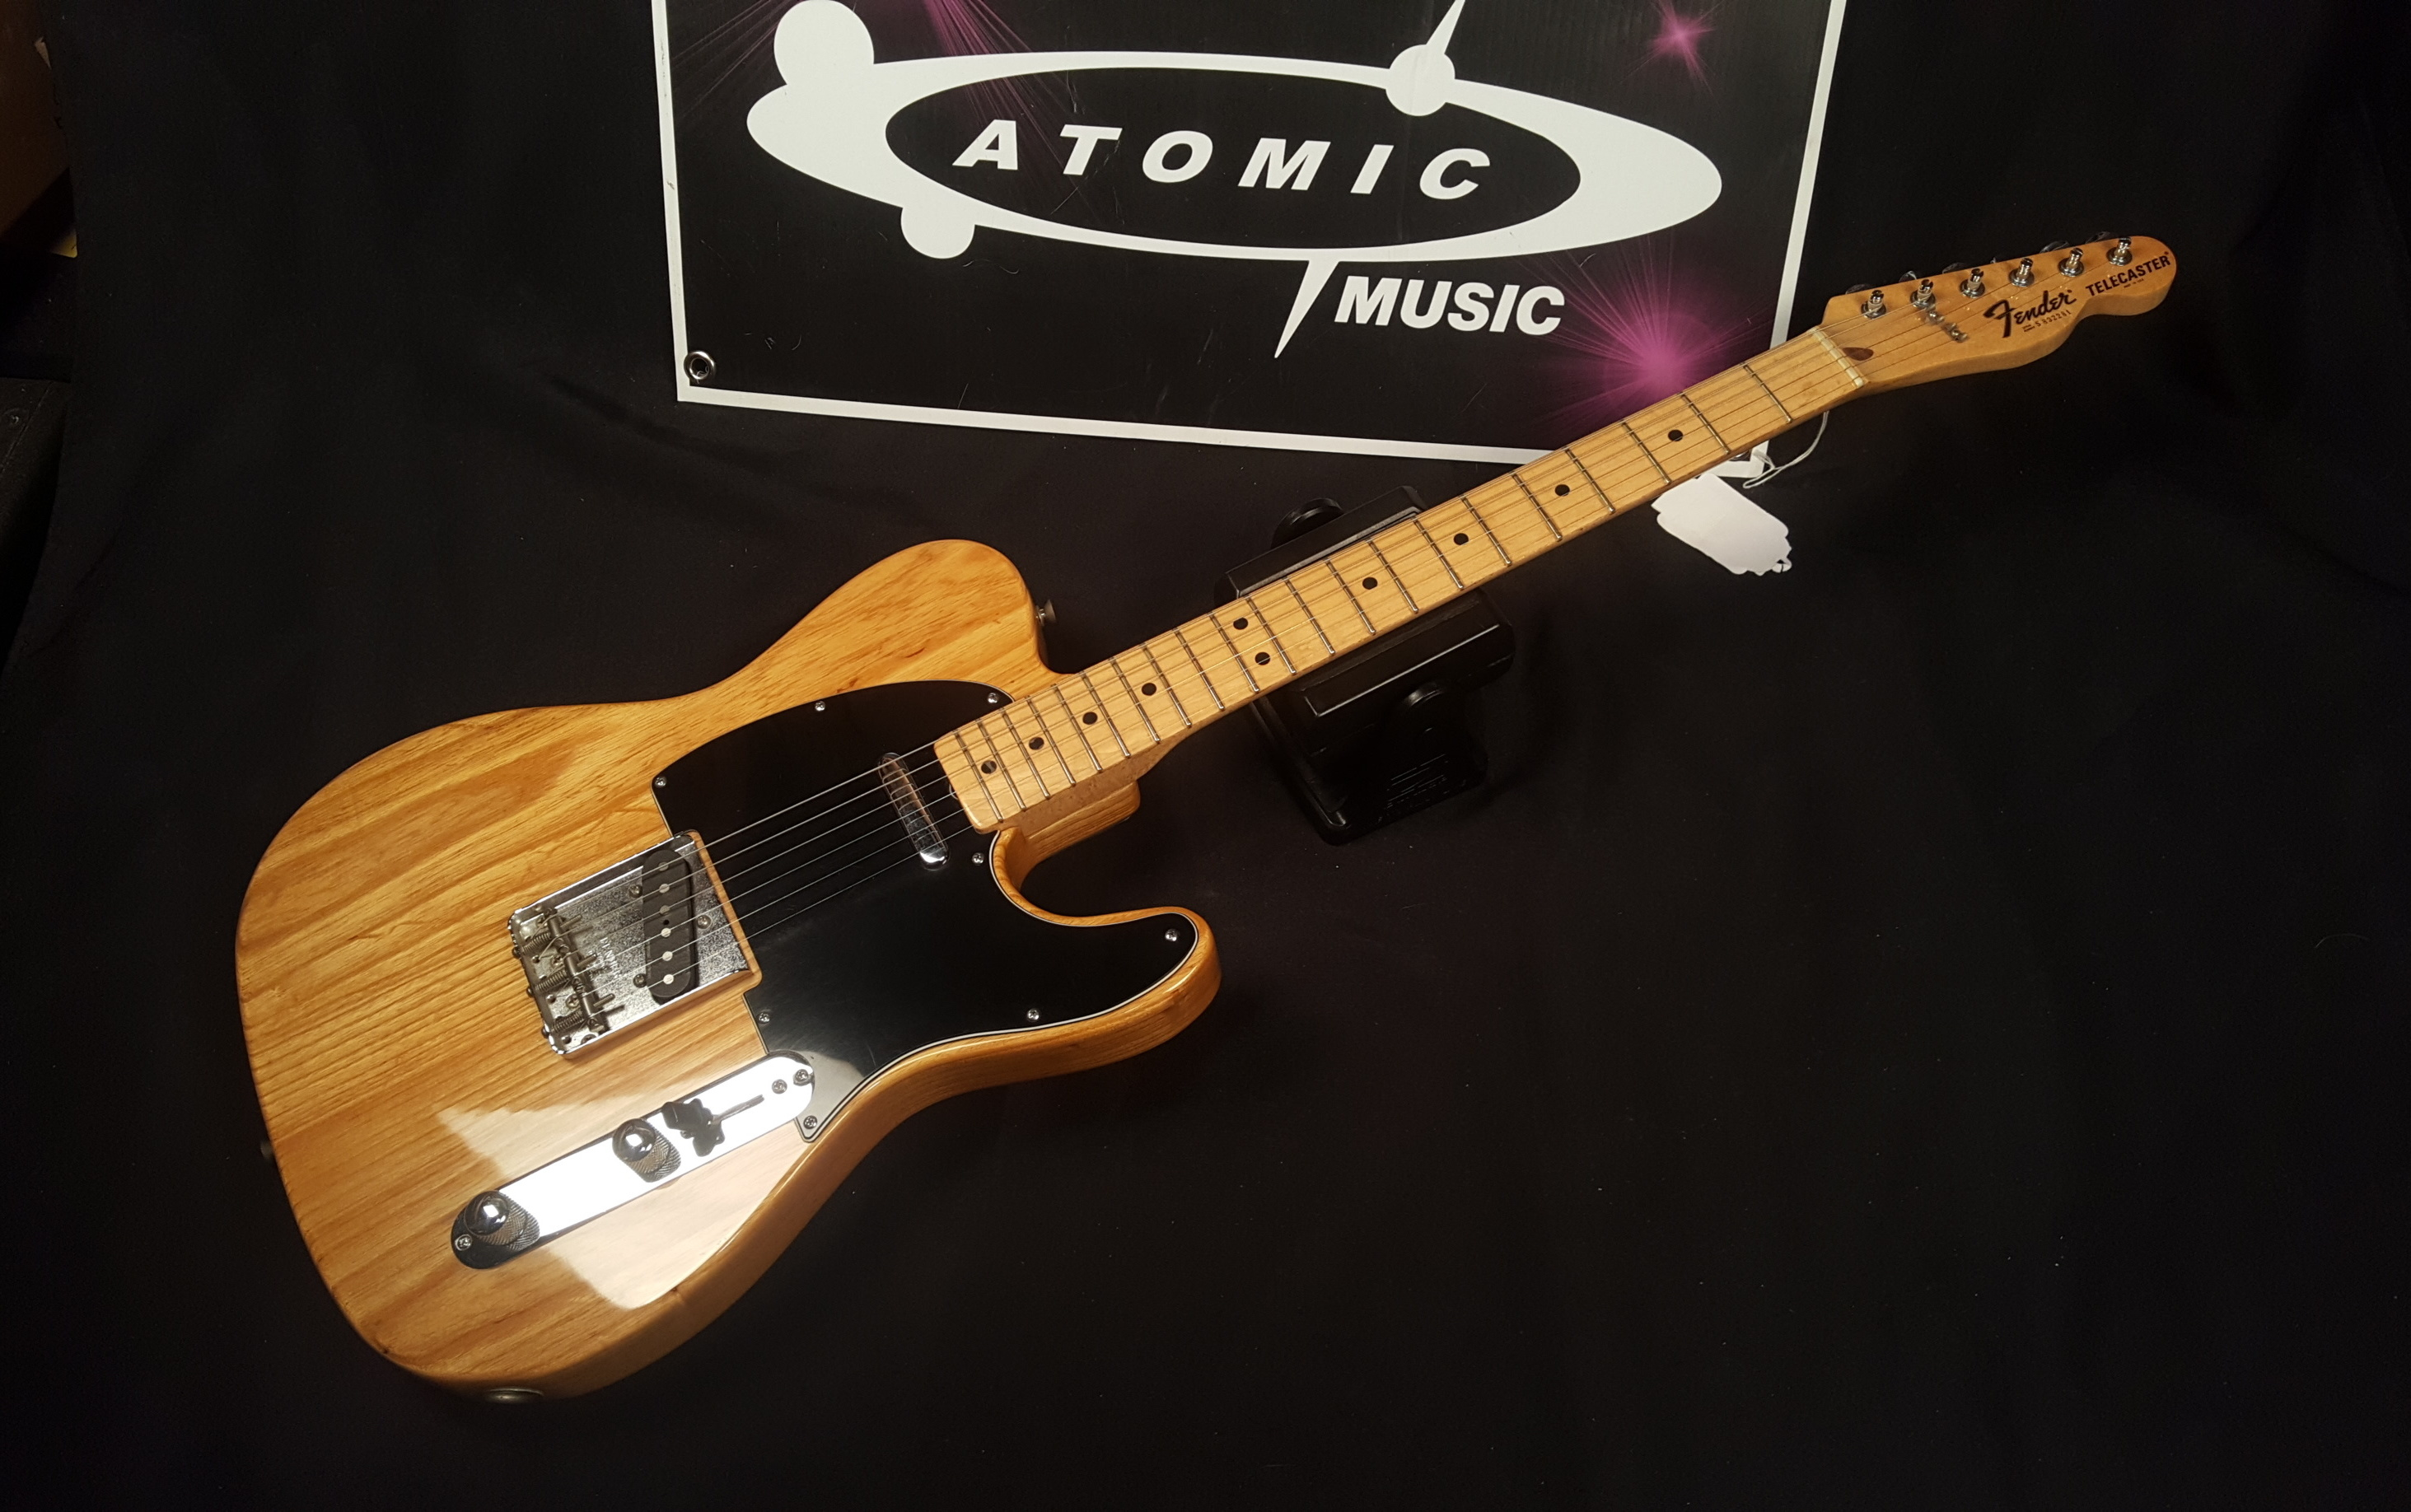 1978 FENDER USA AMERICAN TELECASTER Electric Guitar W/HSC - NATURAL FINISH!!